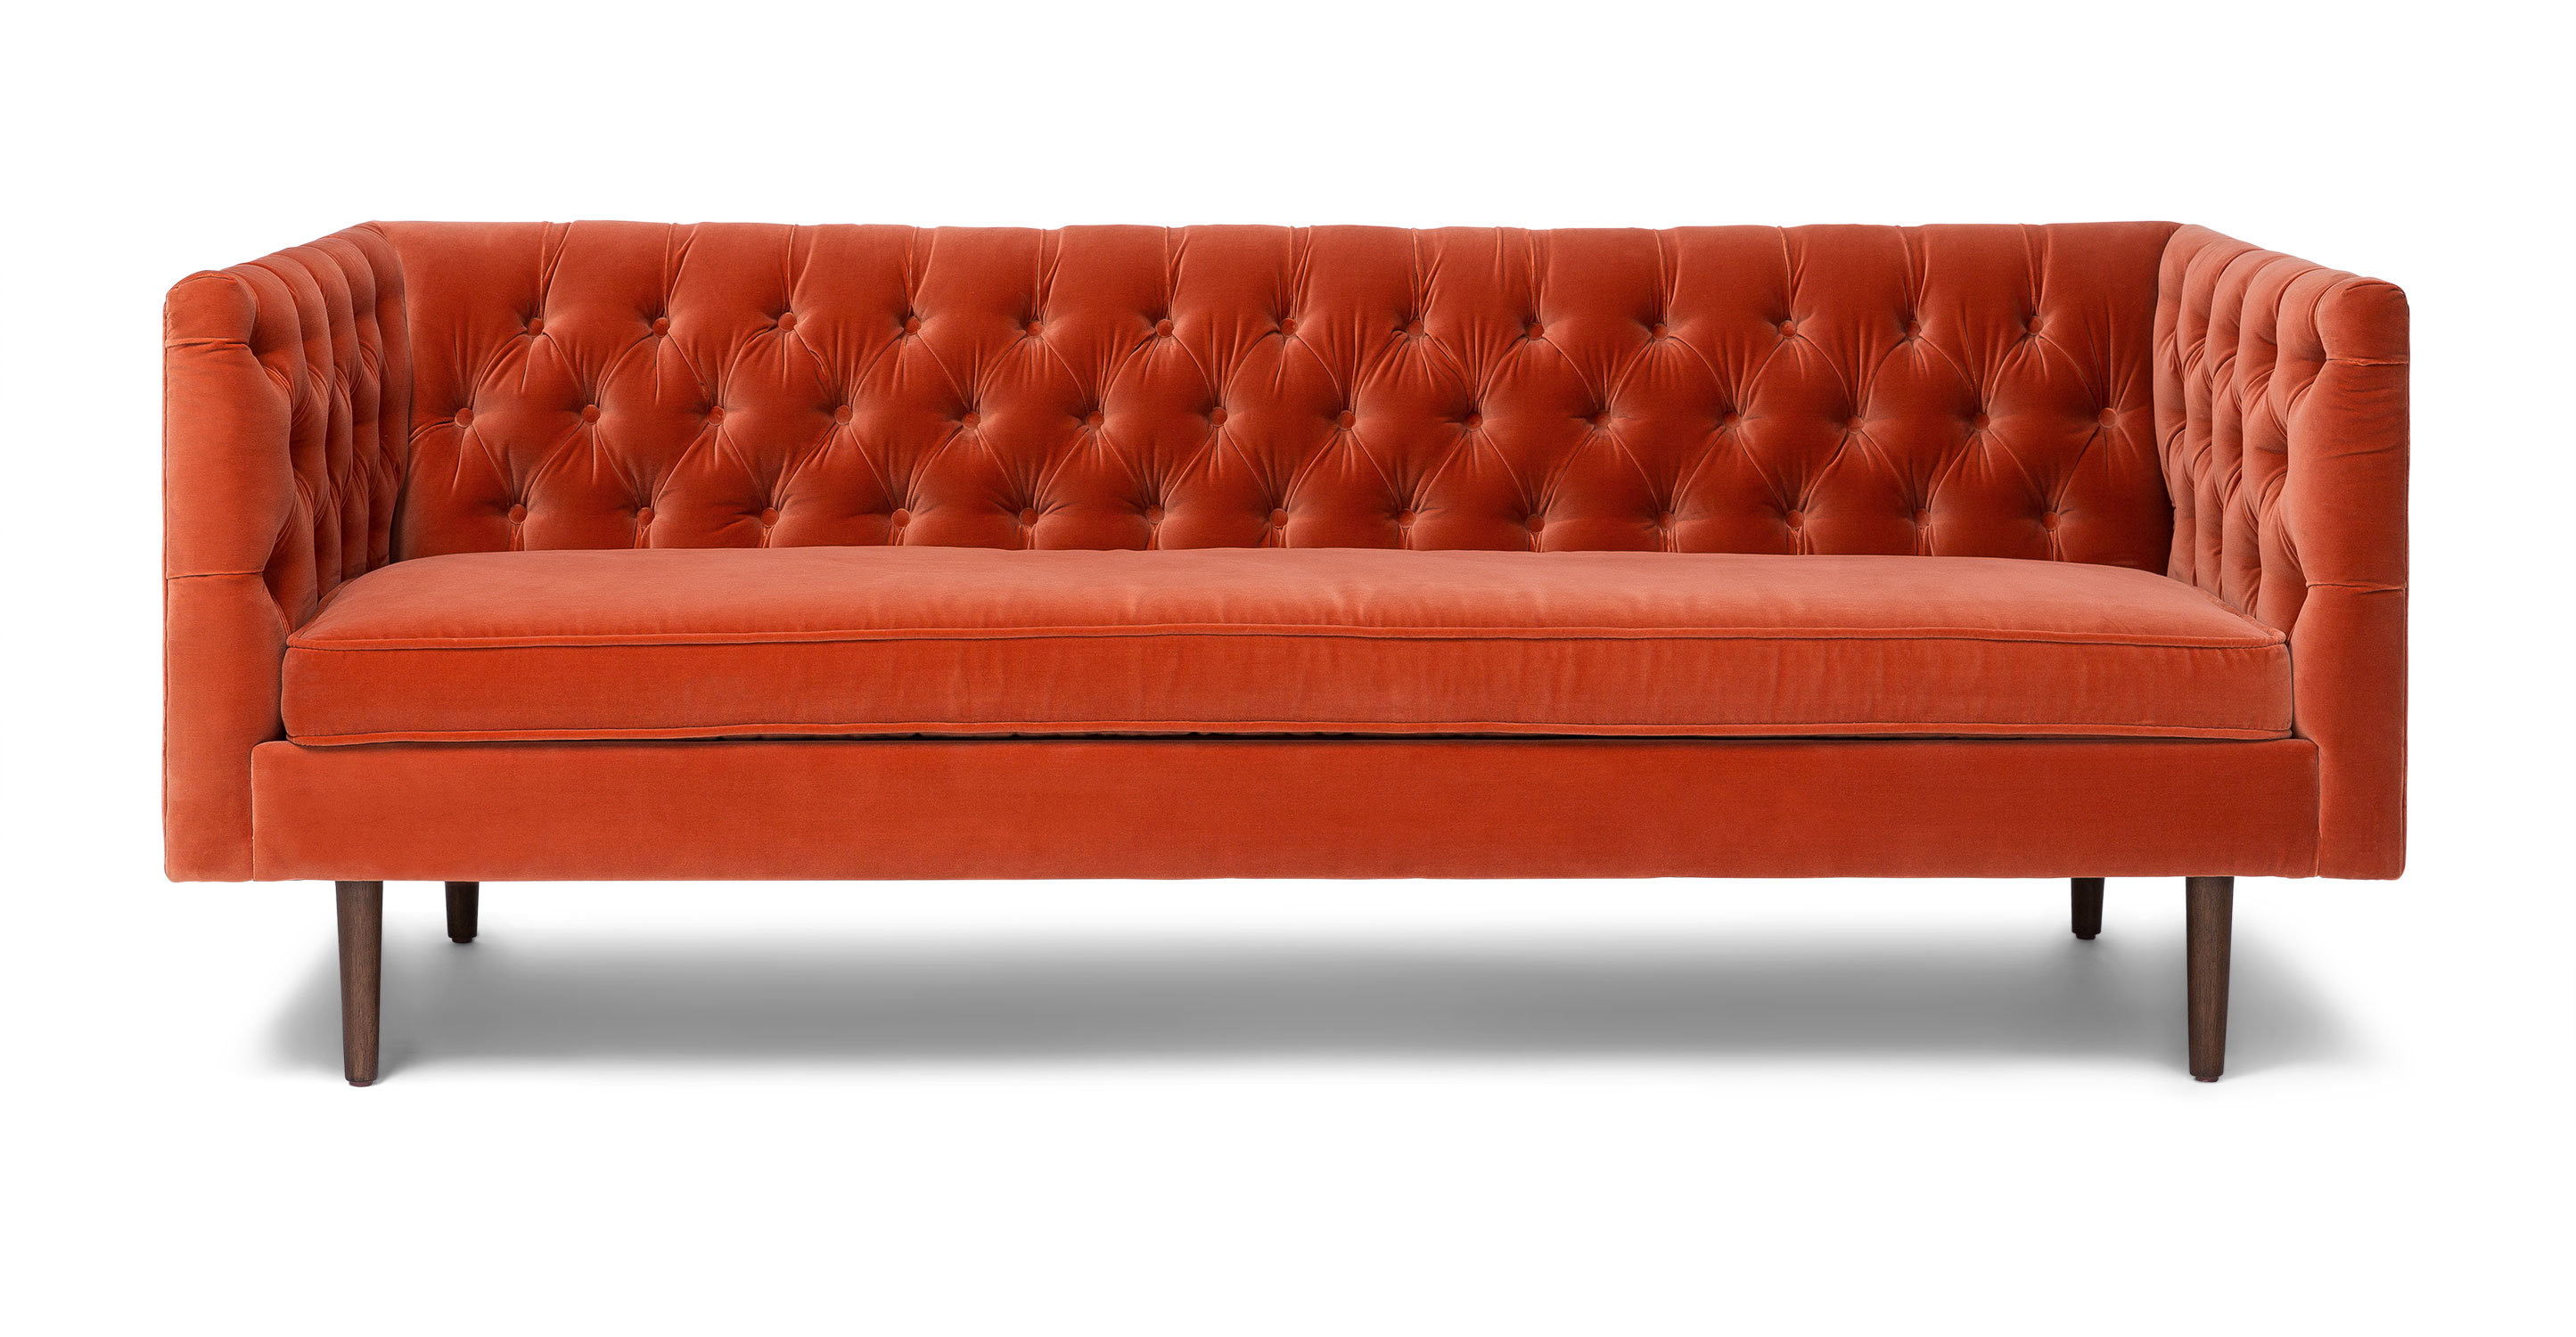 Sofa Orange Chester Persimmon Orange Sofa Article